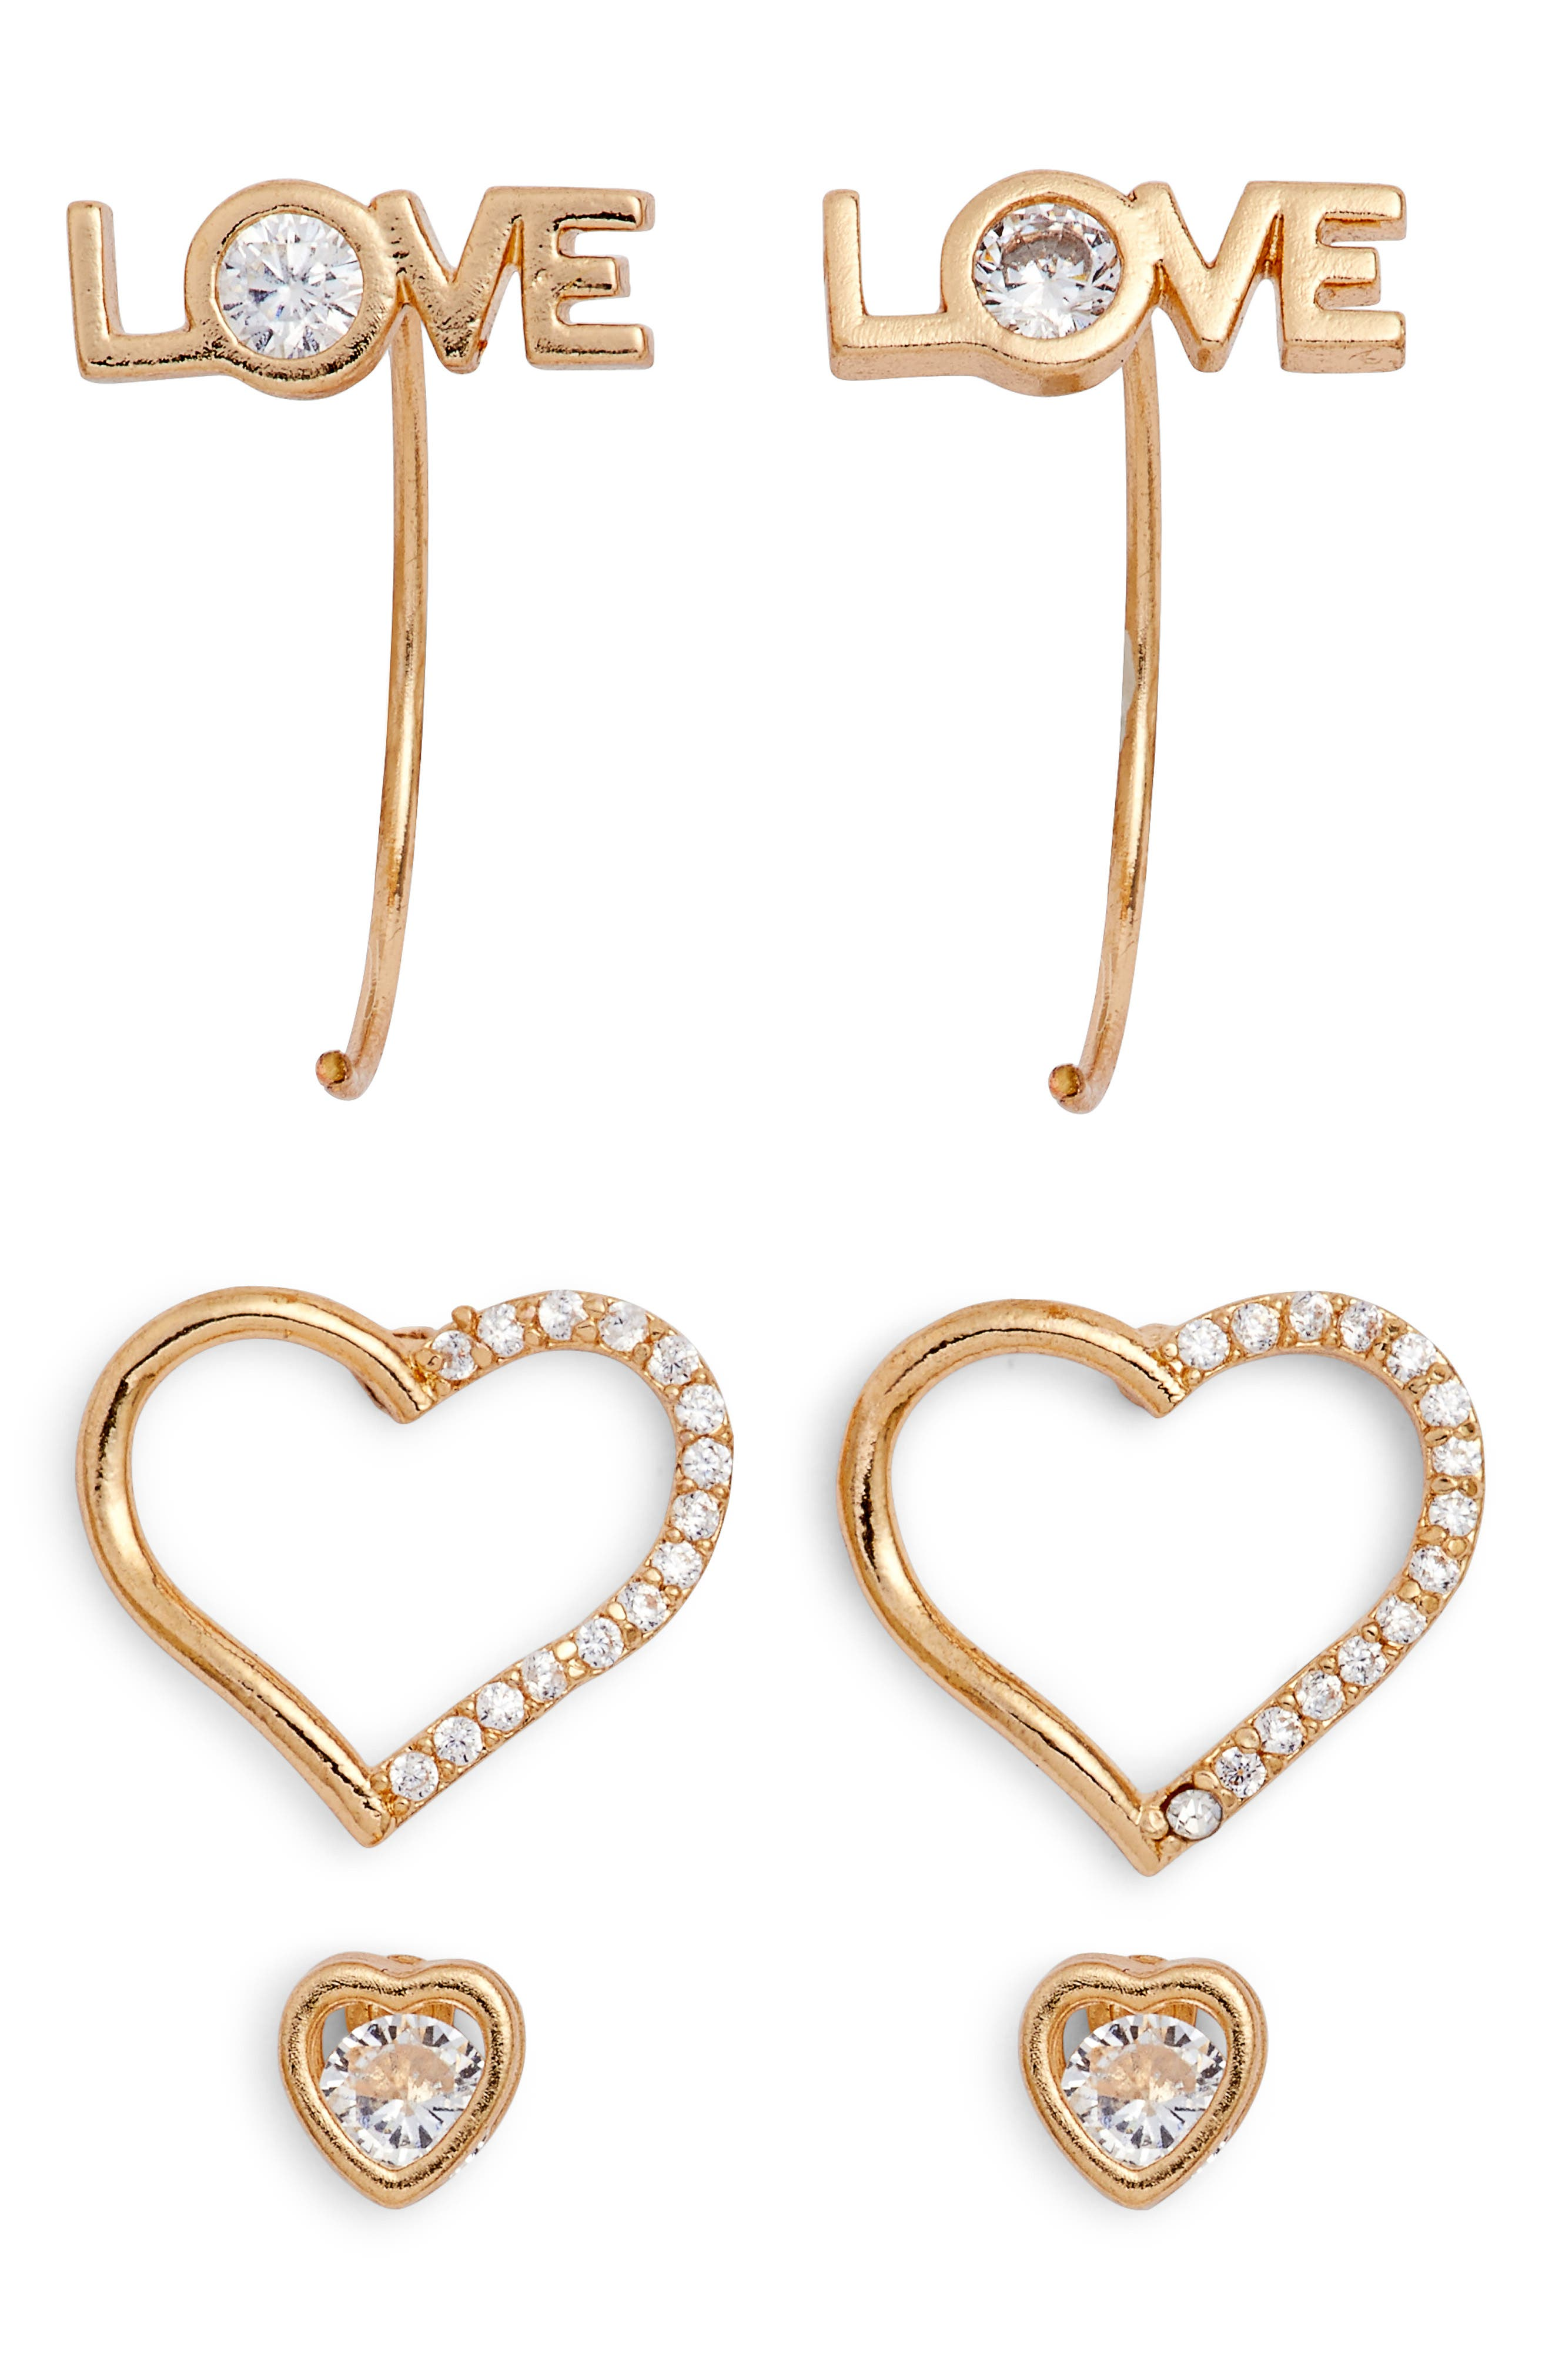 Love 3-Pack Assorted Earrings,                         Main,                         color, 710